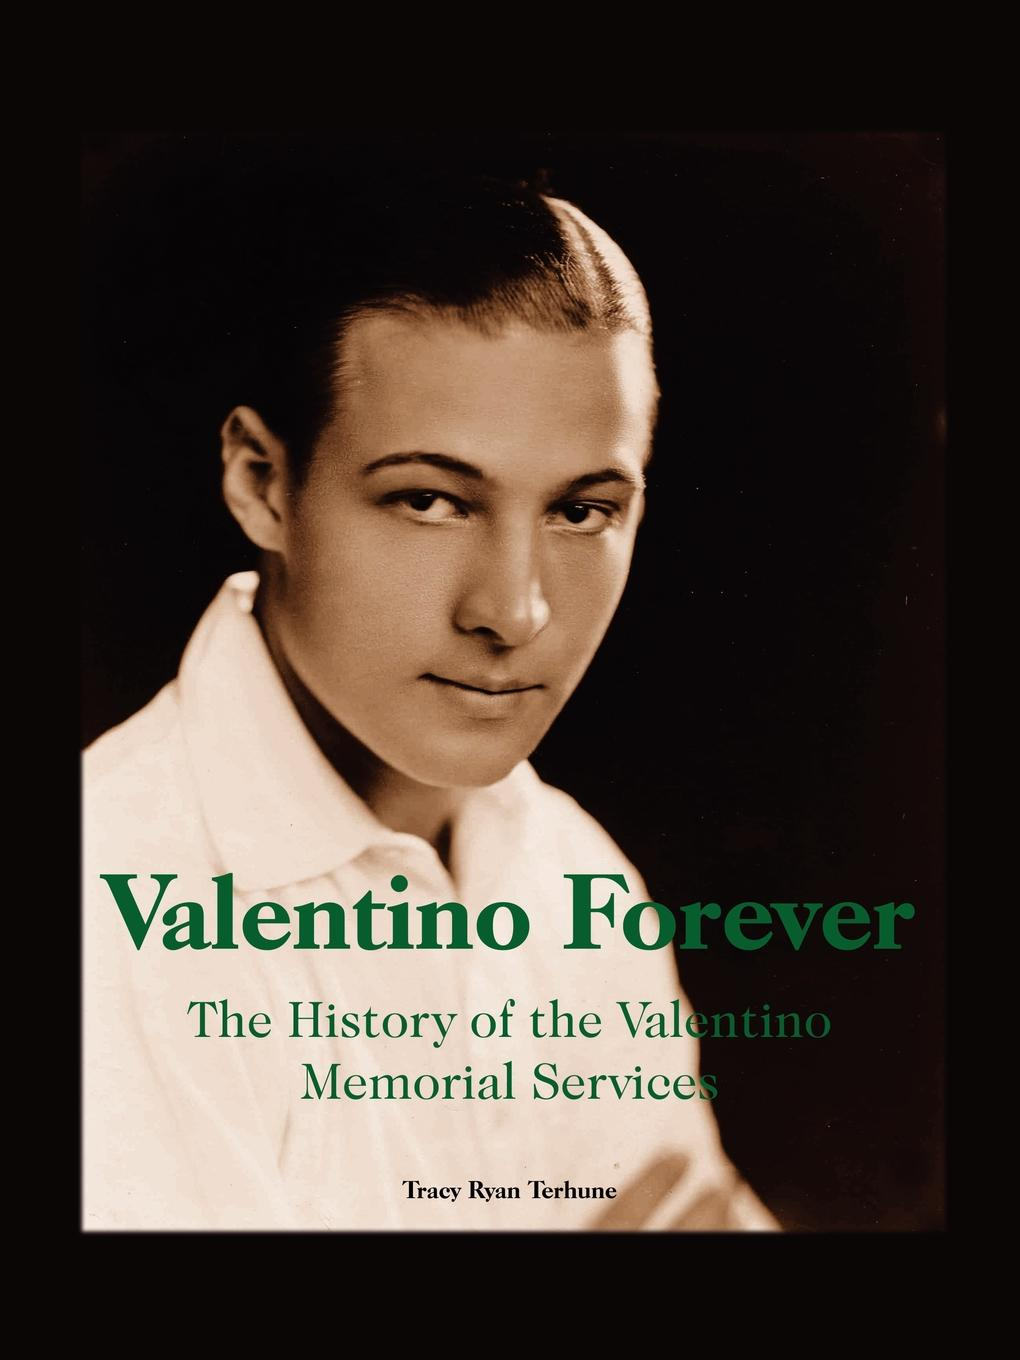 Tracy Ryan Terhune Valentino Forever. The History of the Memorial Services